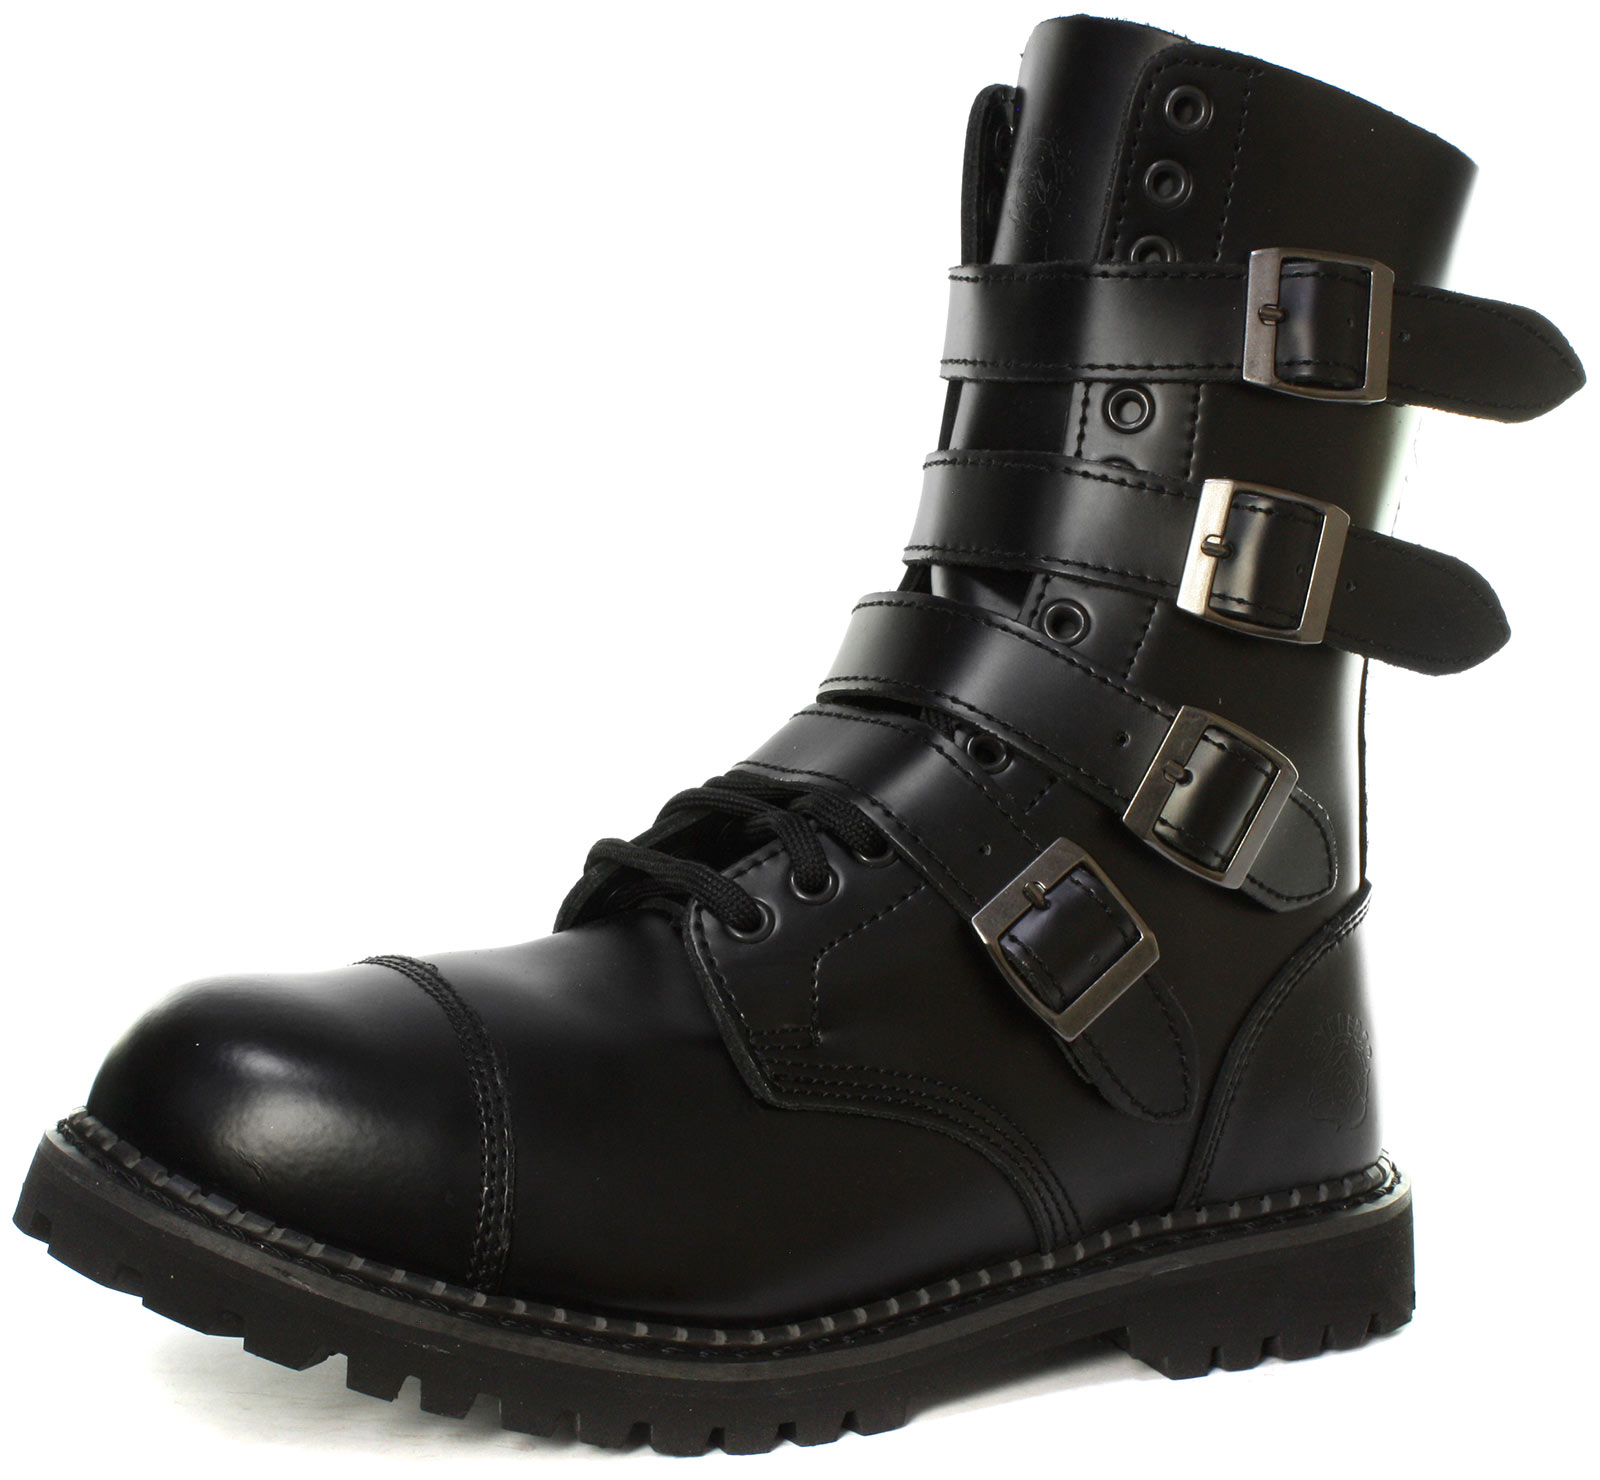 Grinders Quad CS 14 Eyelet Buckle Uni Steel Toe Derby Boots ALL SIZES